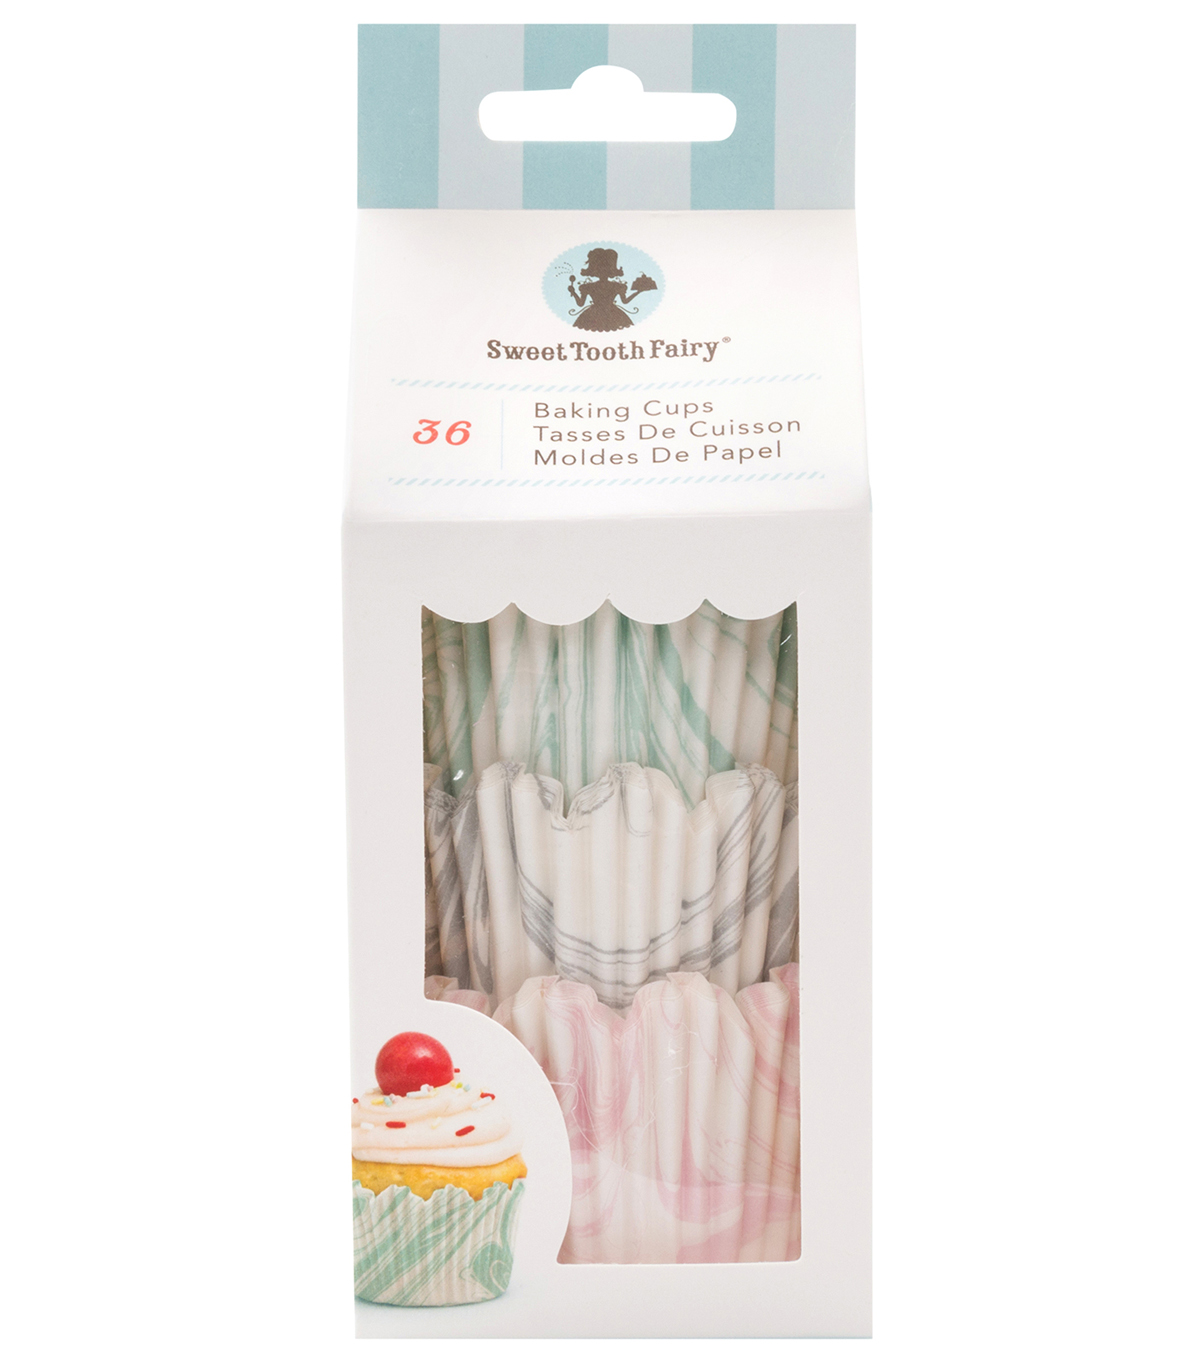 The Sweet Tooth Fairy 36 pk Baking Cups-Marble